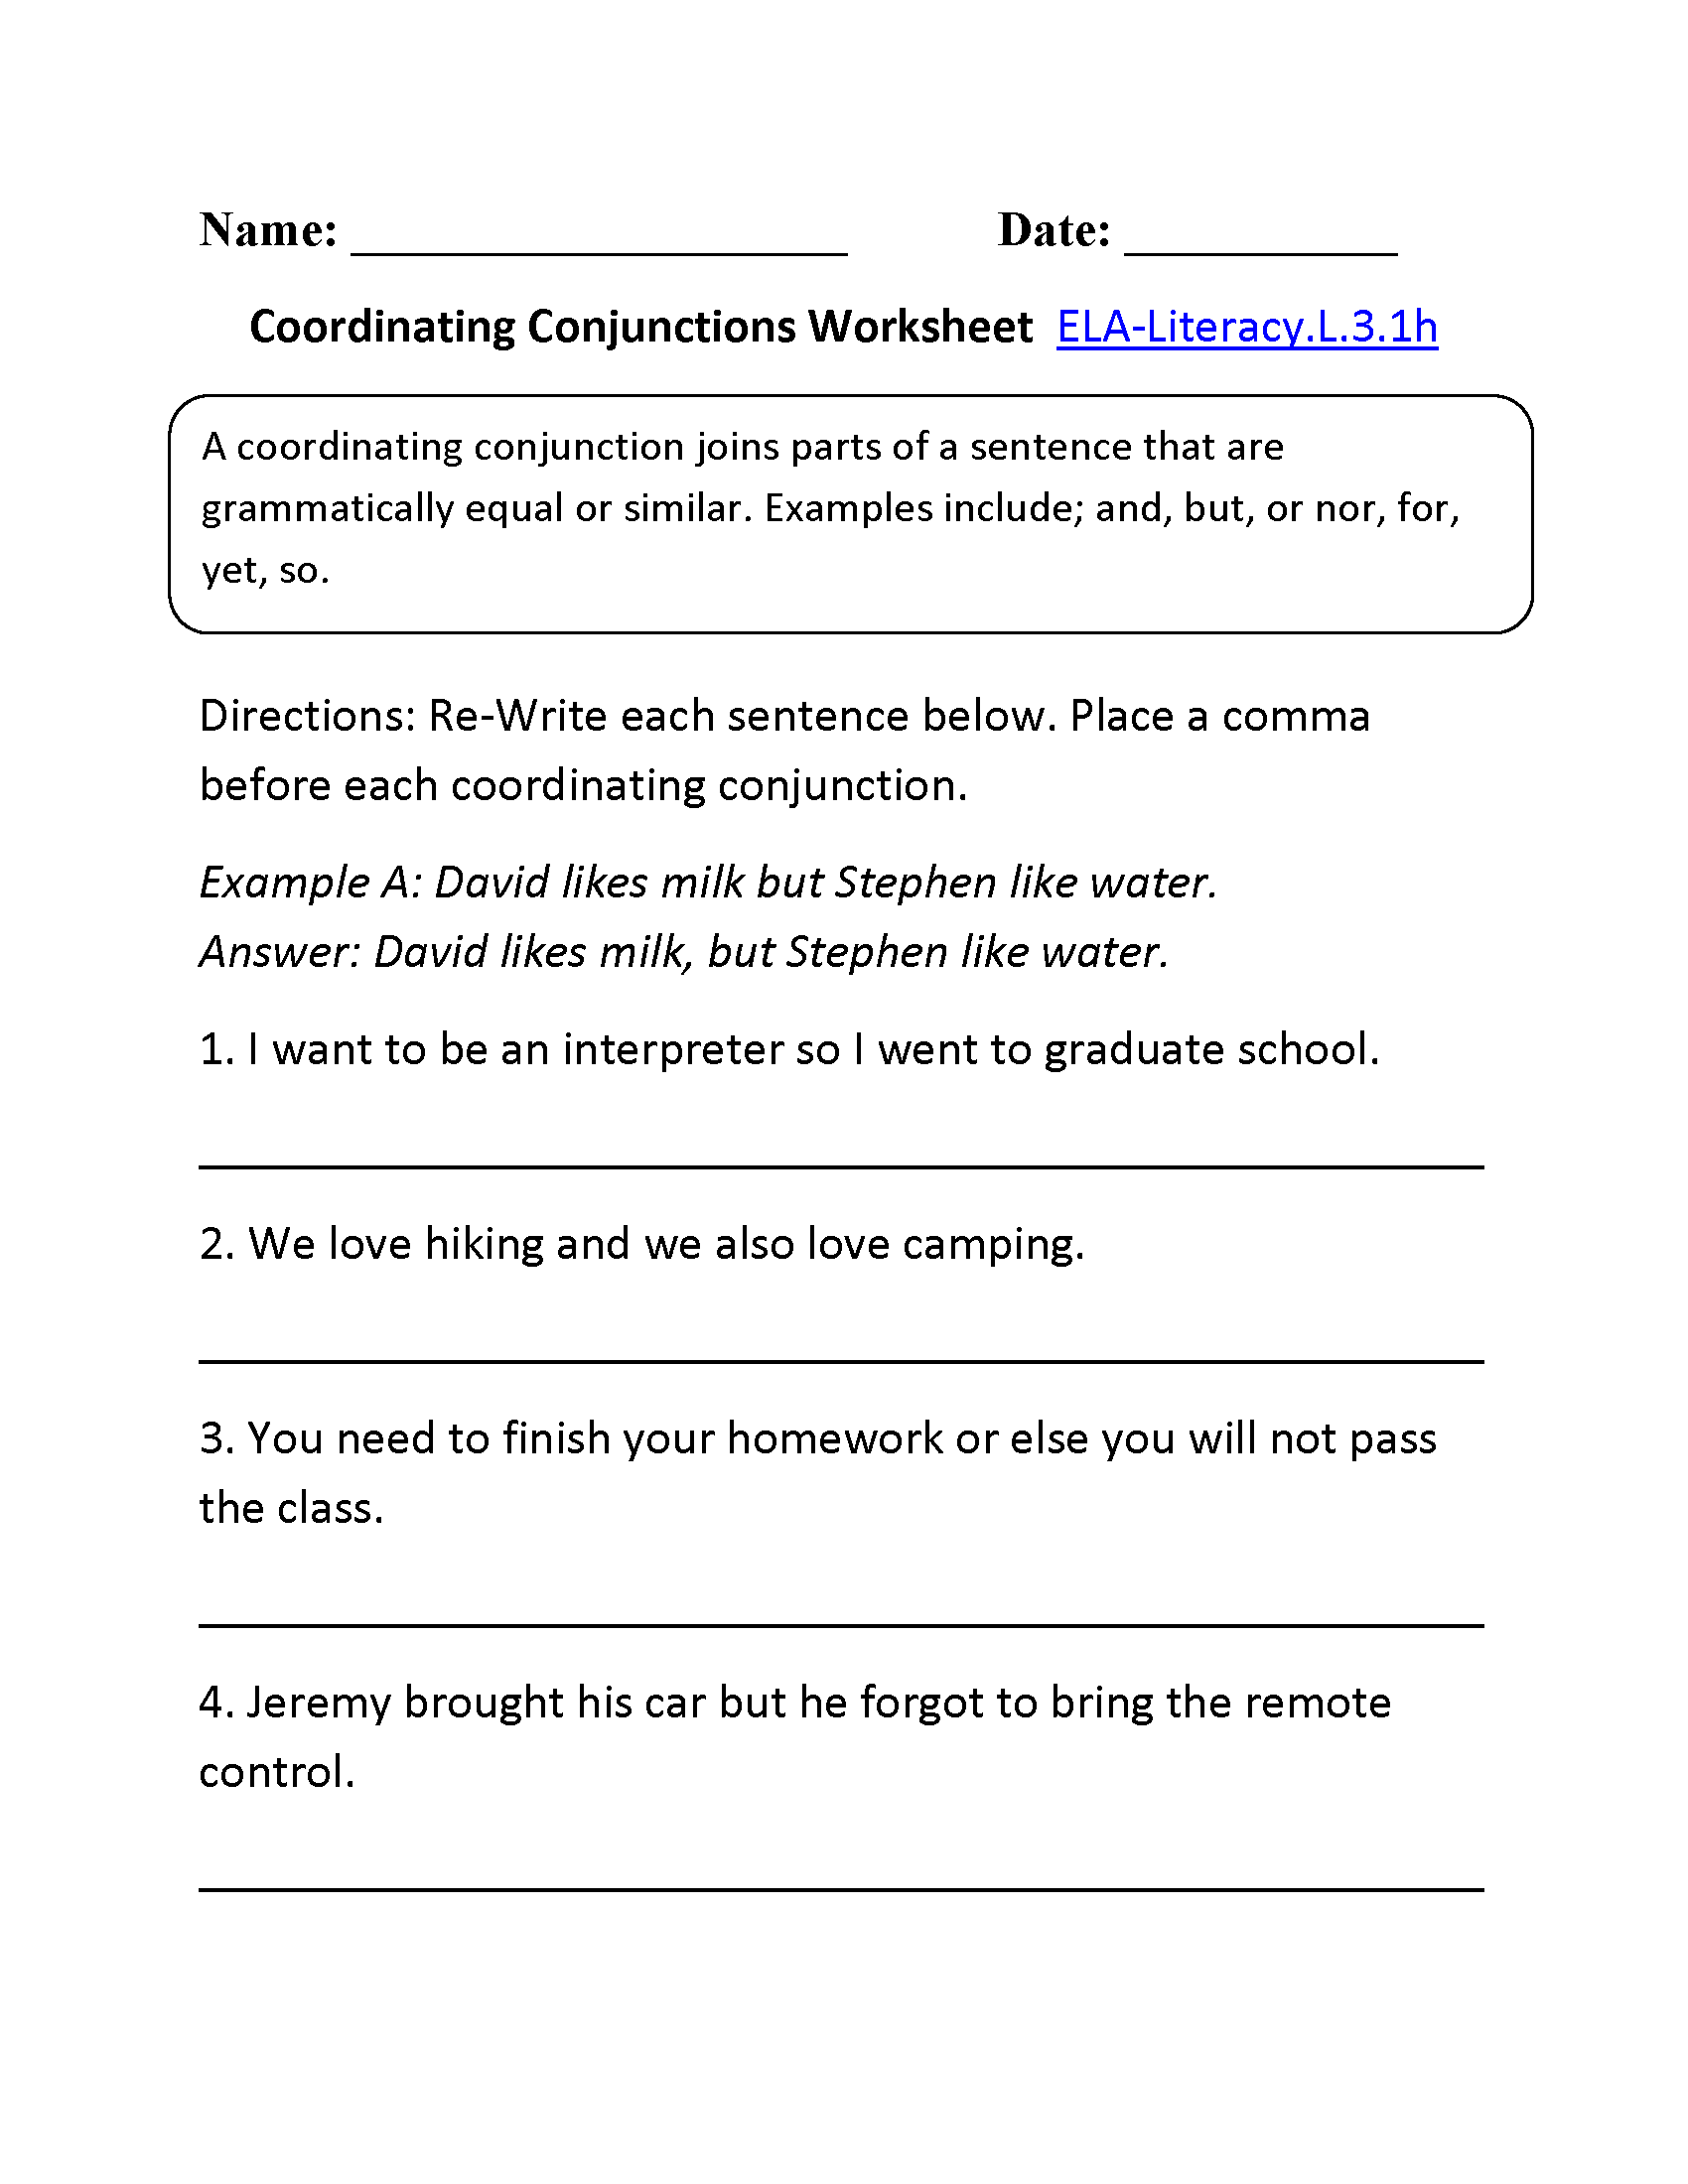 Worksheets Fanboys Grammar Worksheet coordinating conjunctions worksheet 1 l 3 pinterest 1